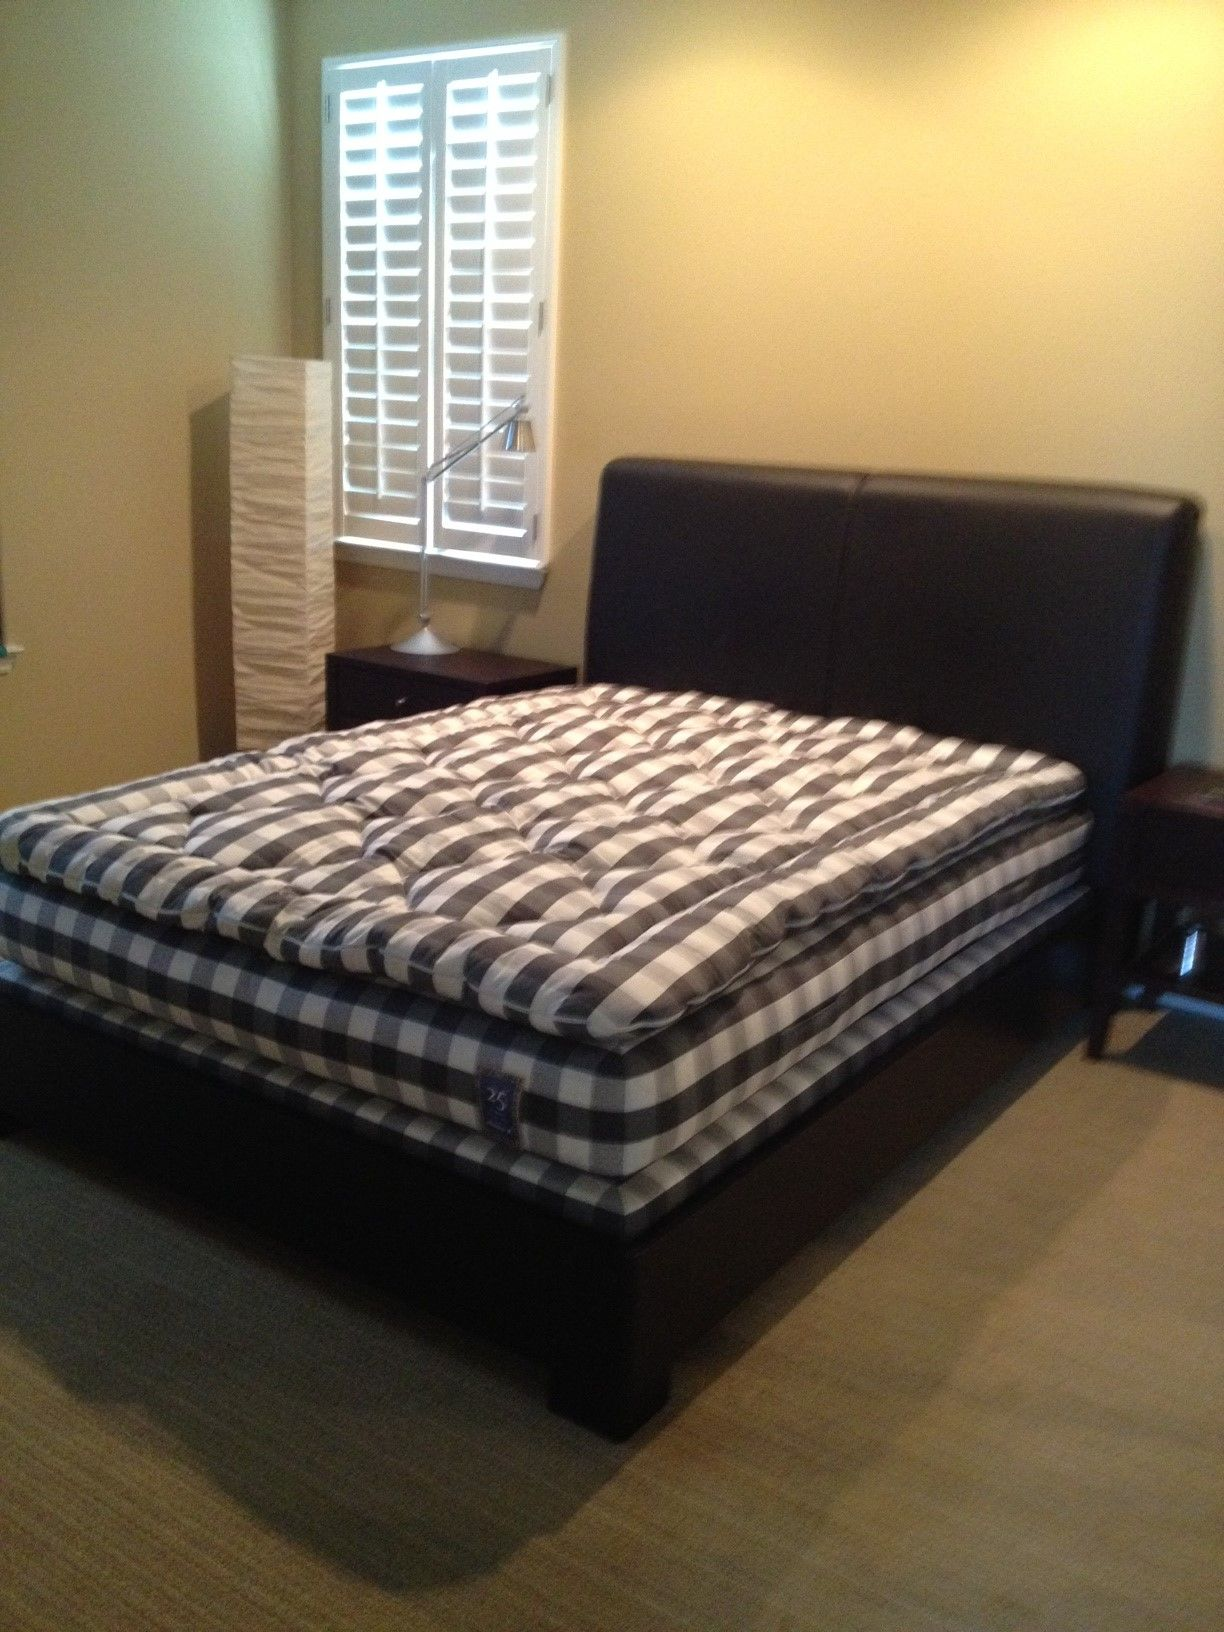 Sealy Posturepedic Backcare Elite Mattress This Hastens Graphite Gray Check Luxuria Fit Perfectly Into It S